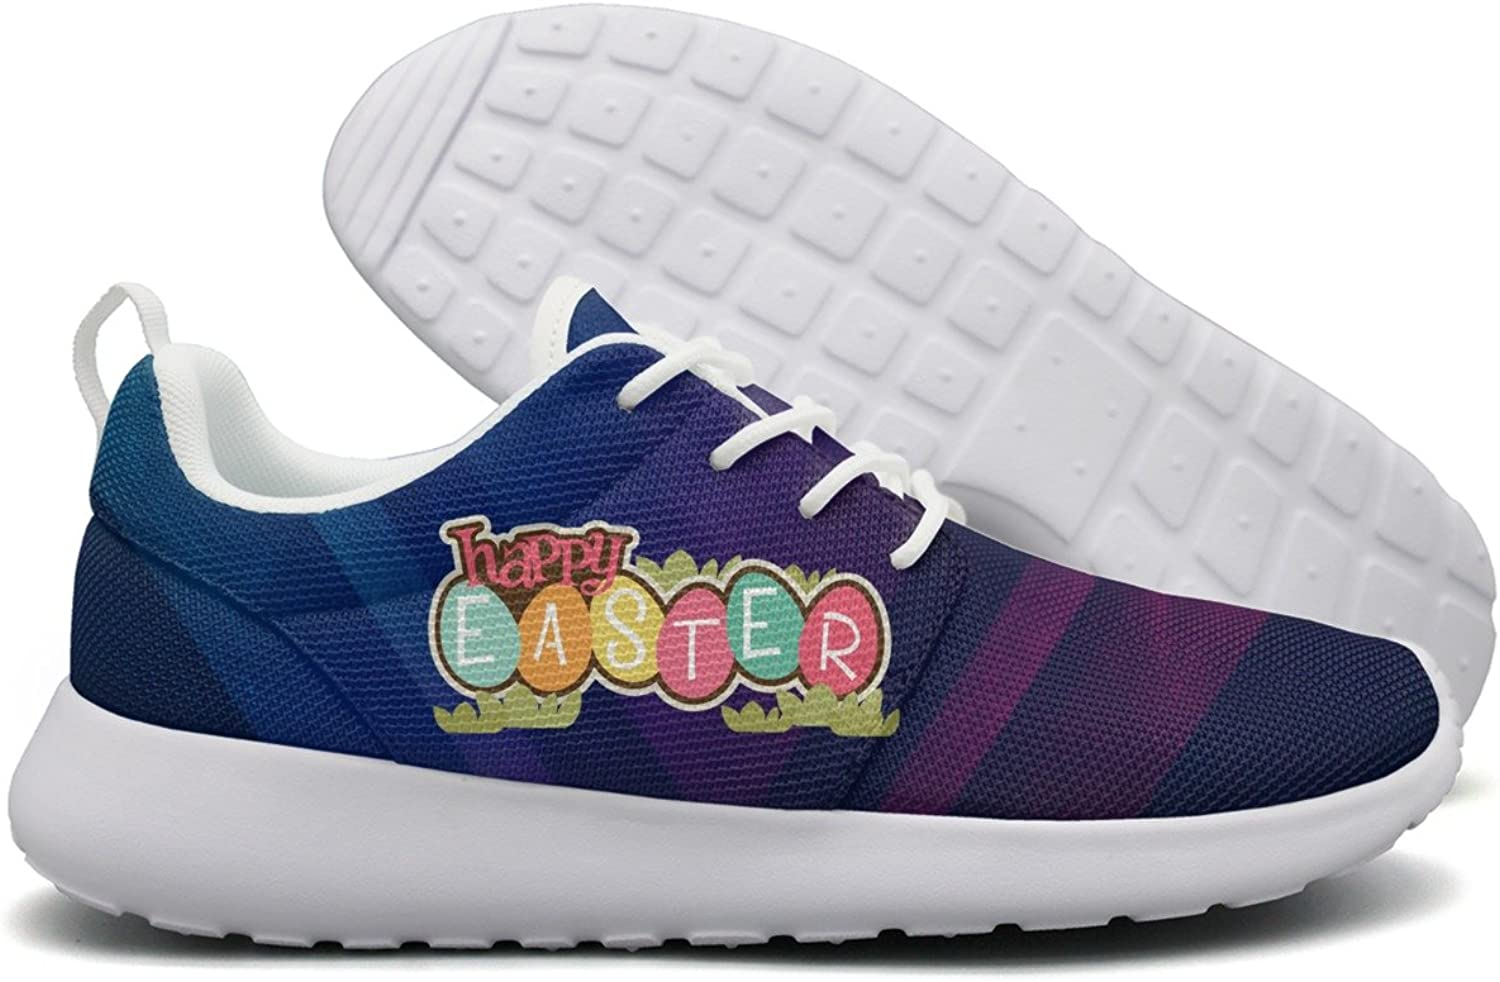 Happy Easter Day 2018 Women Flex Mesh Women Casual shoes